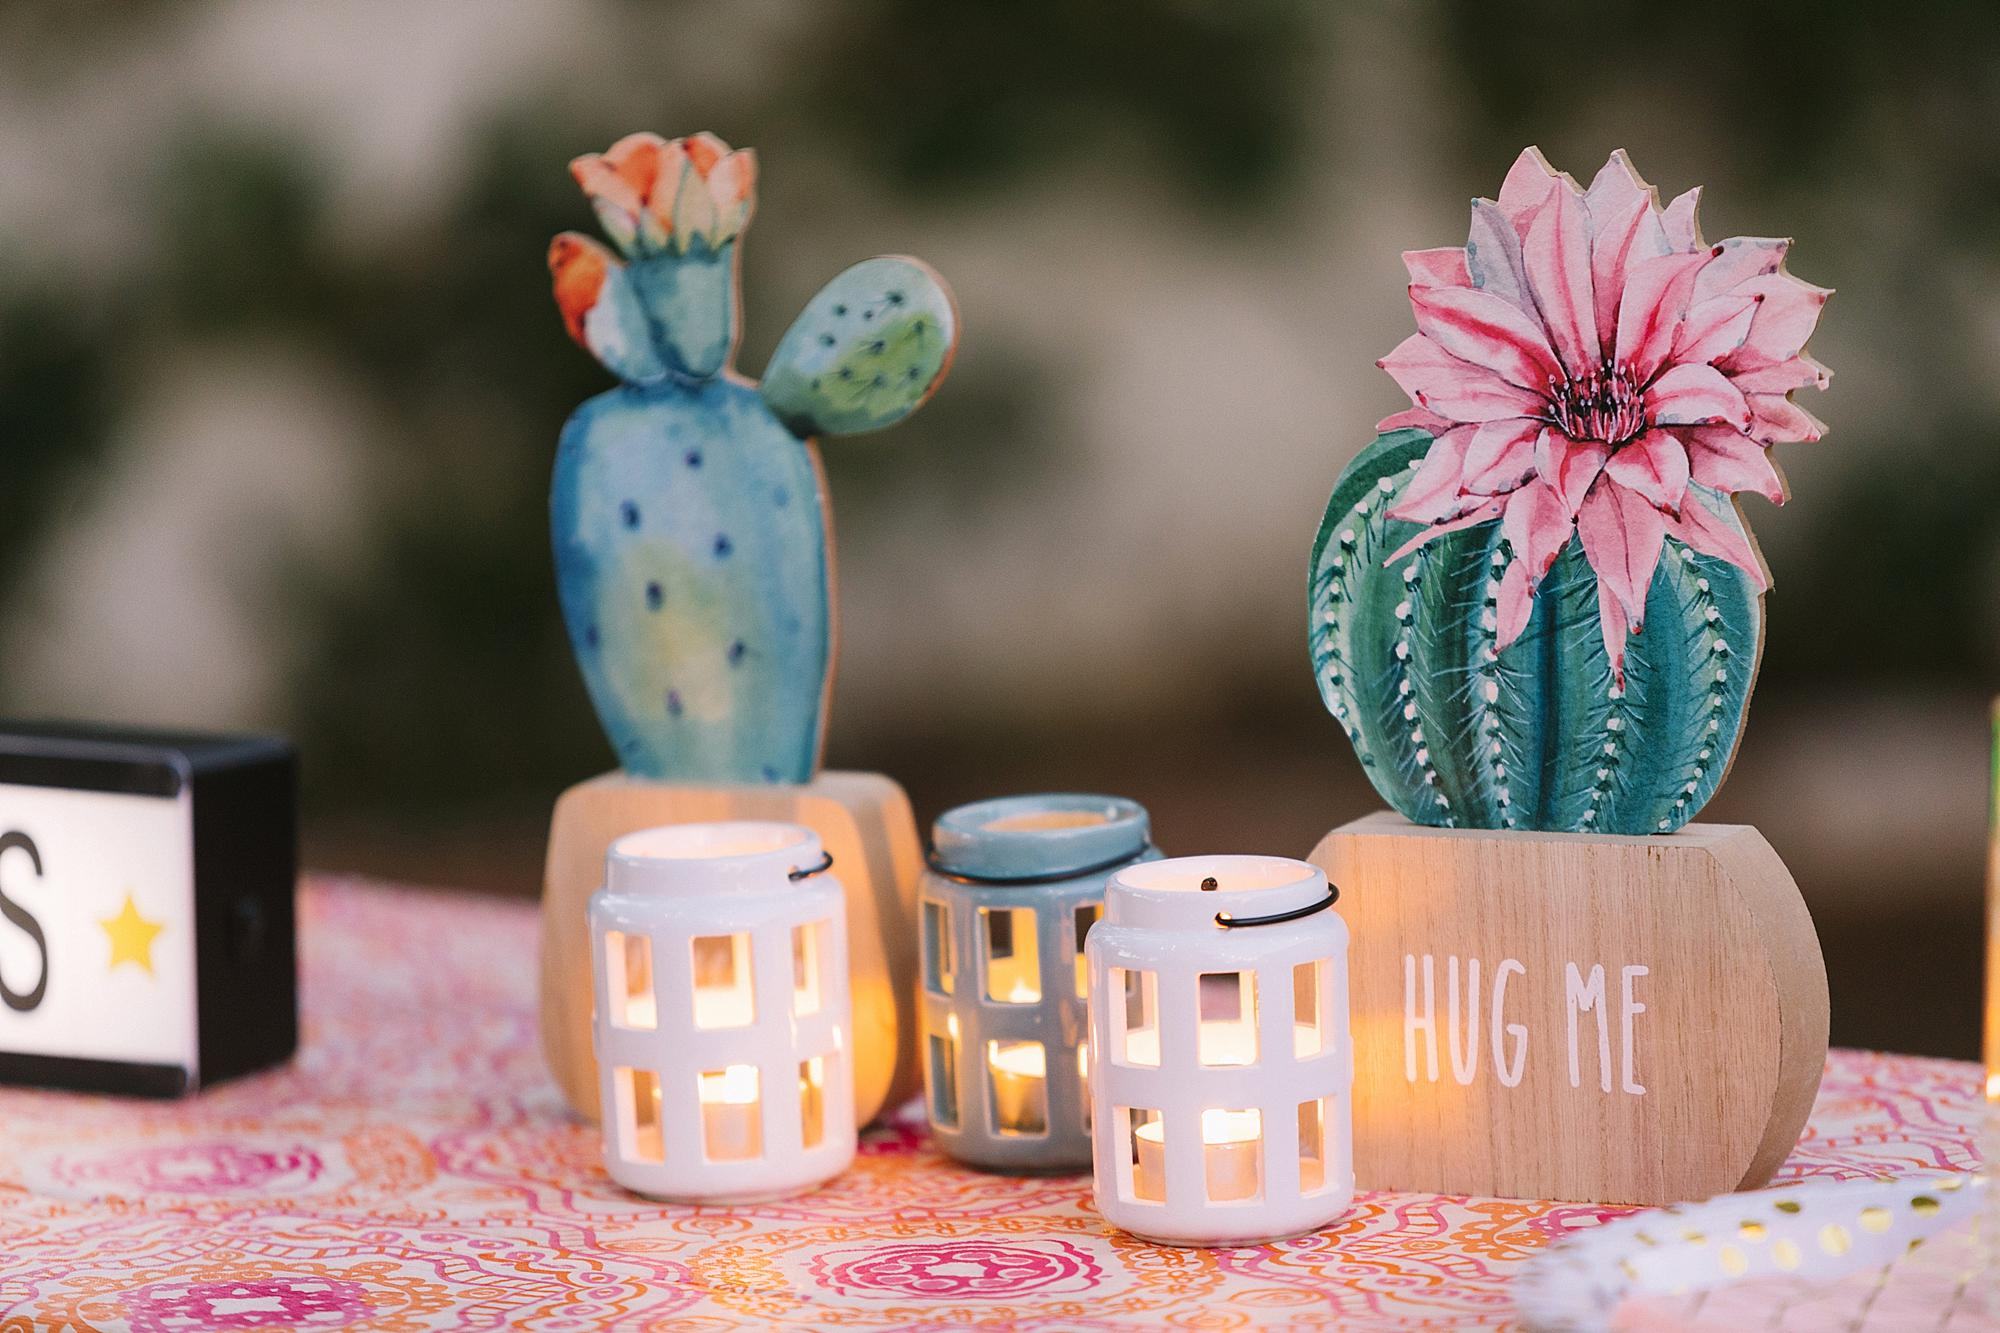 Night time boho theme party with LED light up dream catchers from the 99 only store - check out this party all from the 99 cent store to stay under budget for your party! cactus tealights